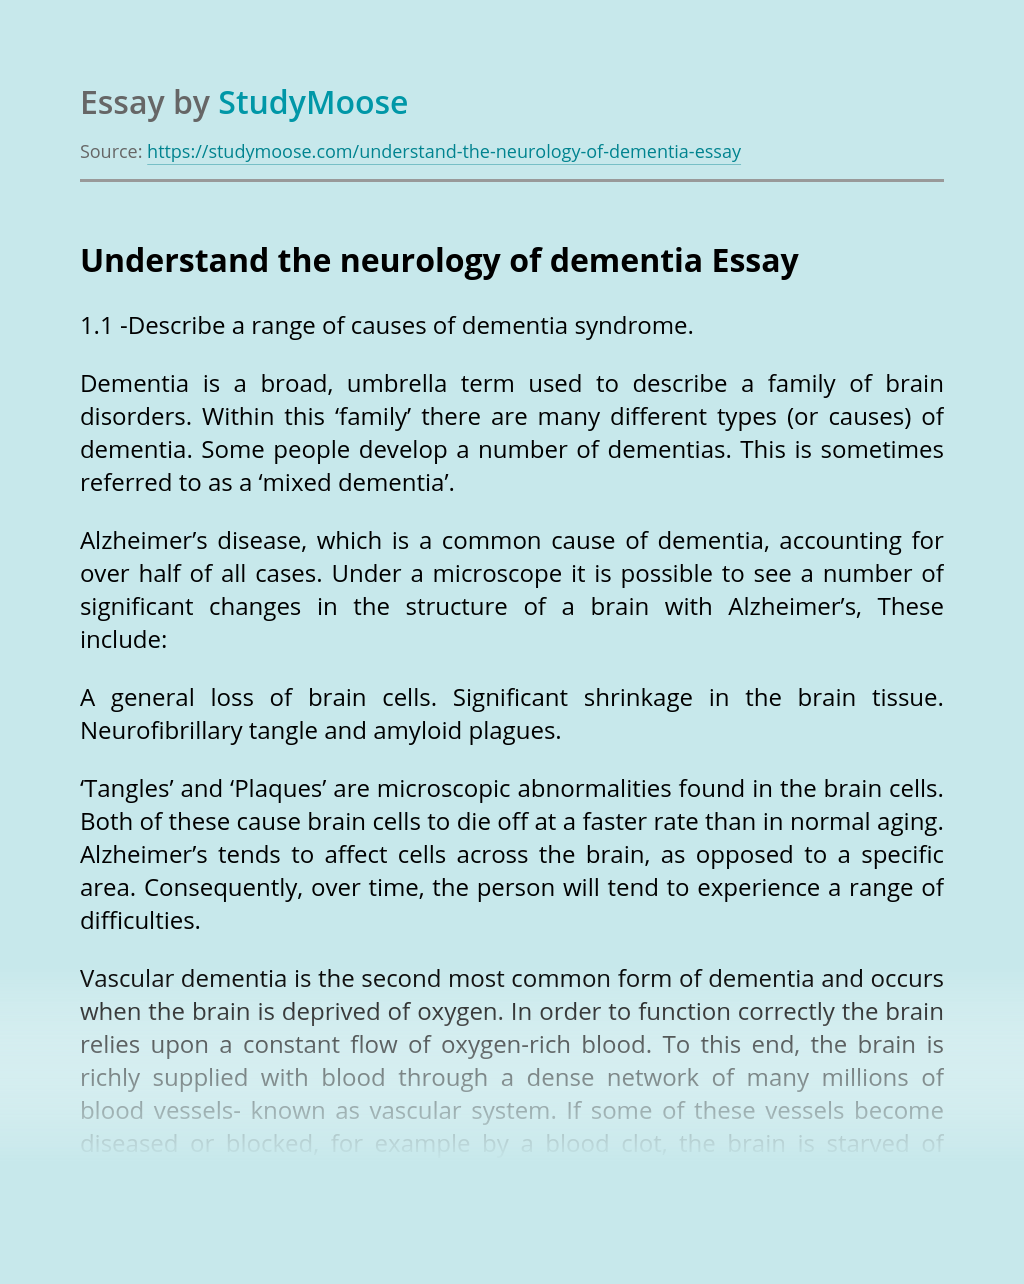 Understand the Neurology of Dementia